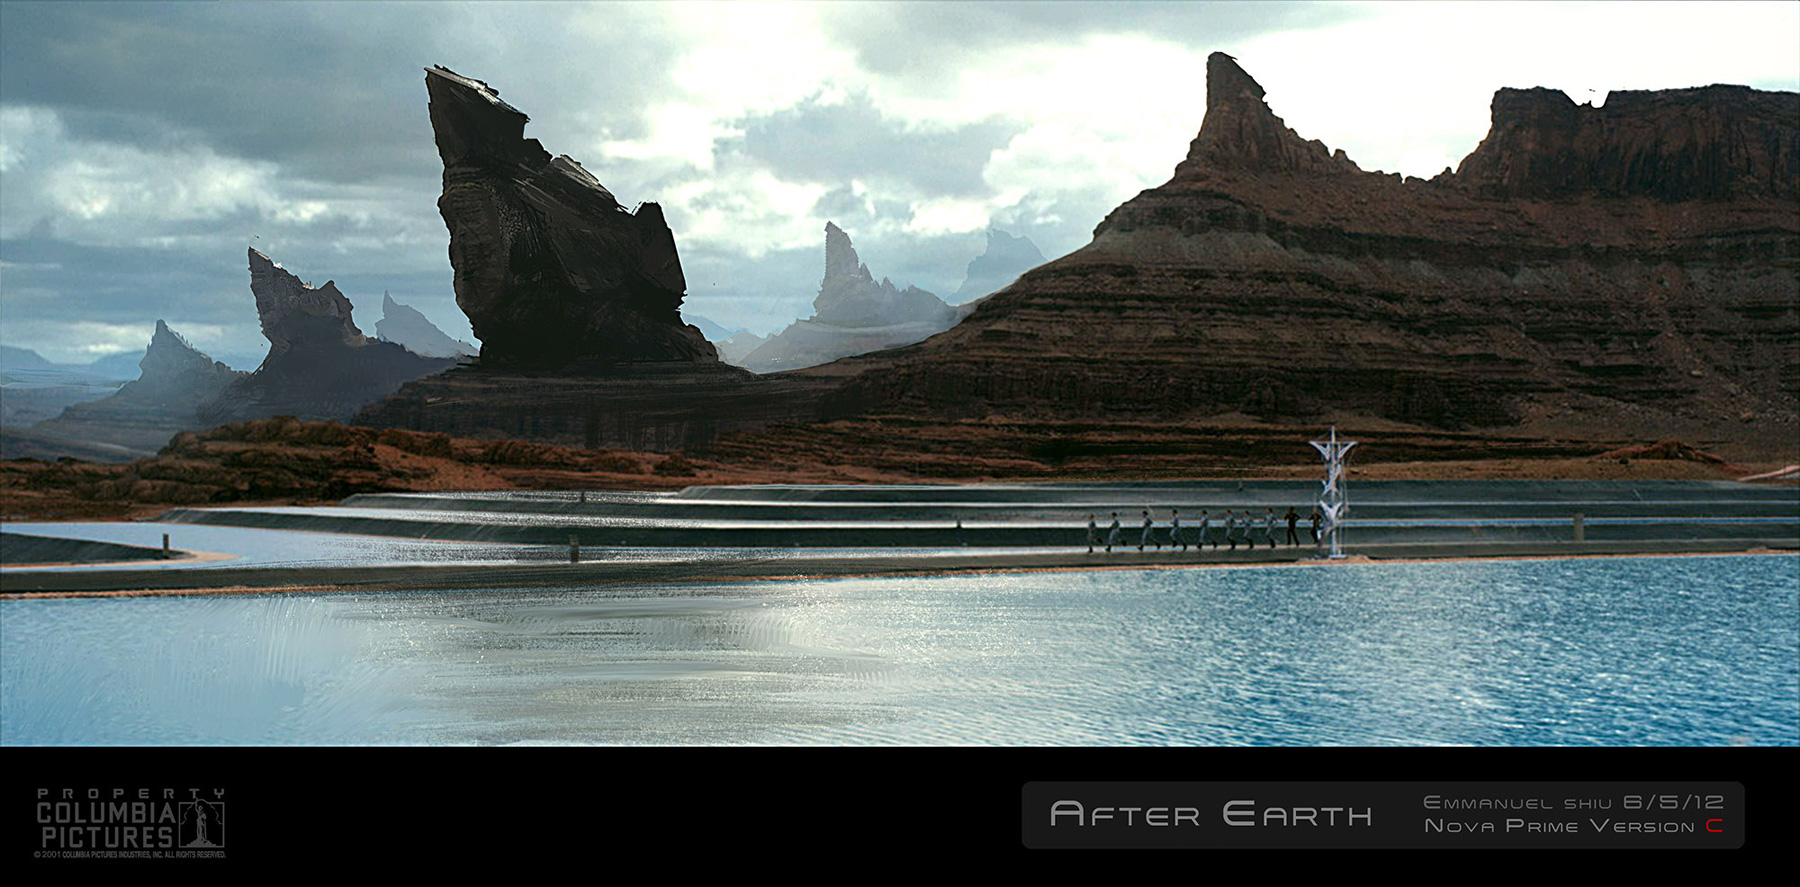 after earth concept art - photo #25